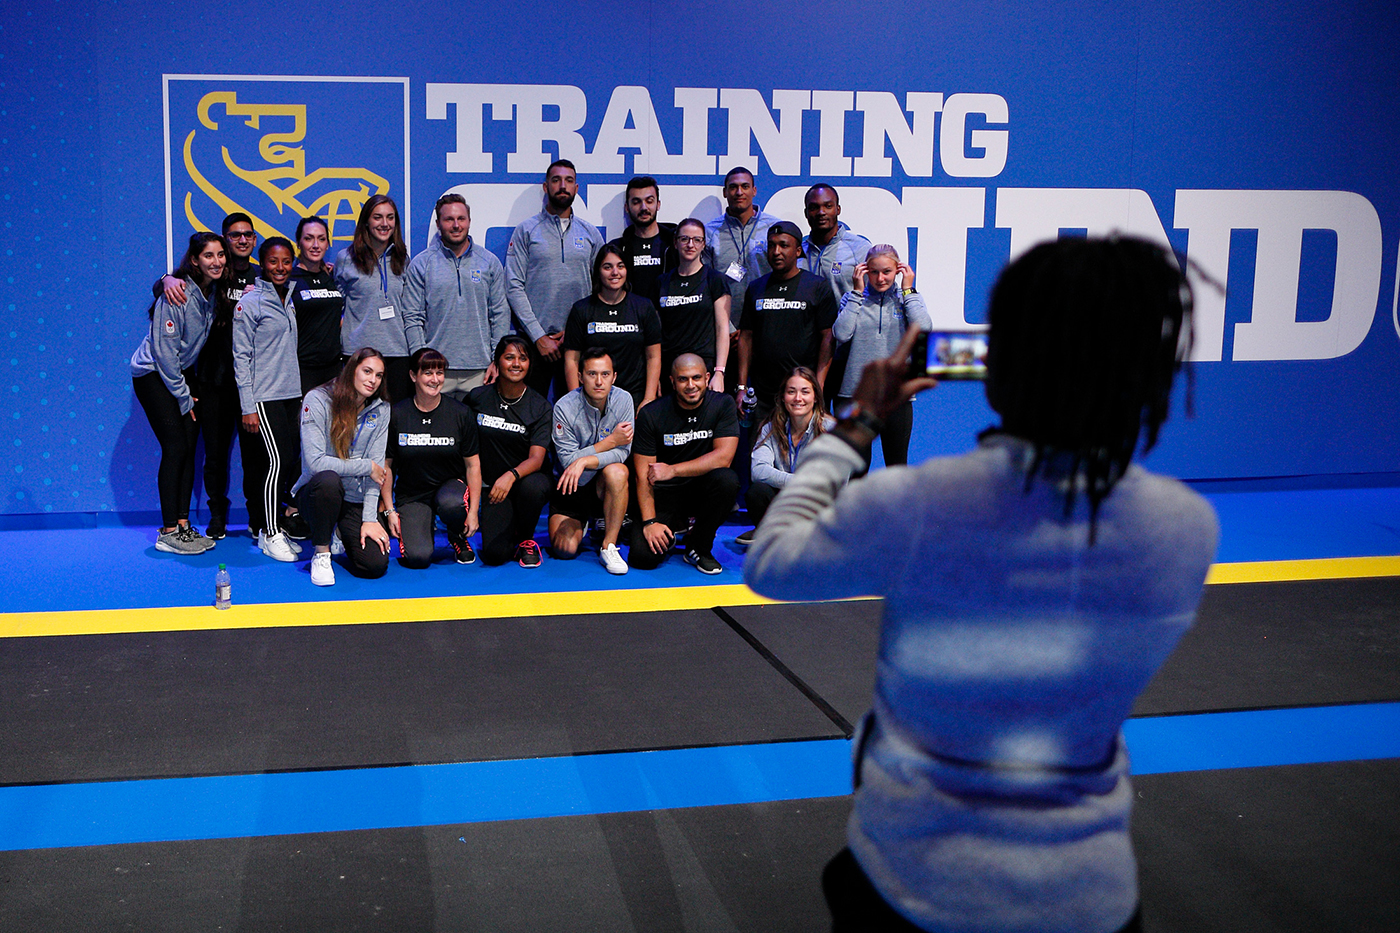 RBCTG Crew and Athletes